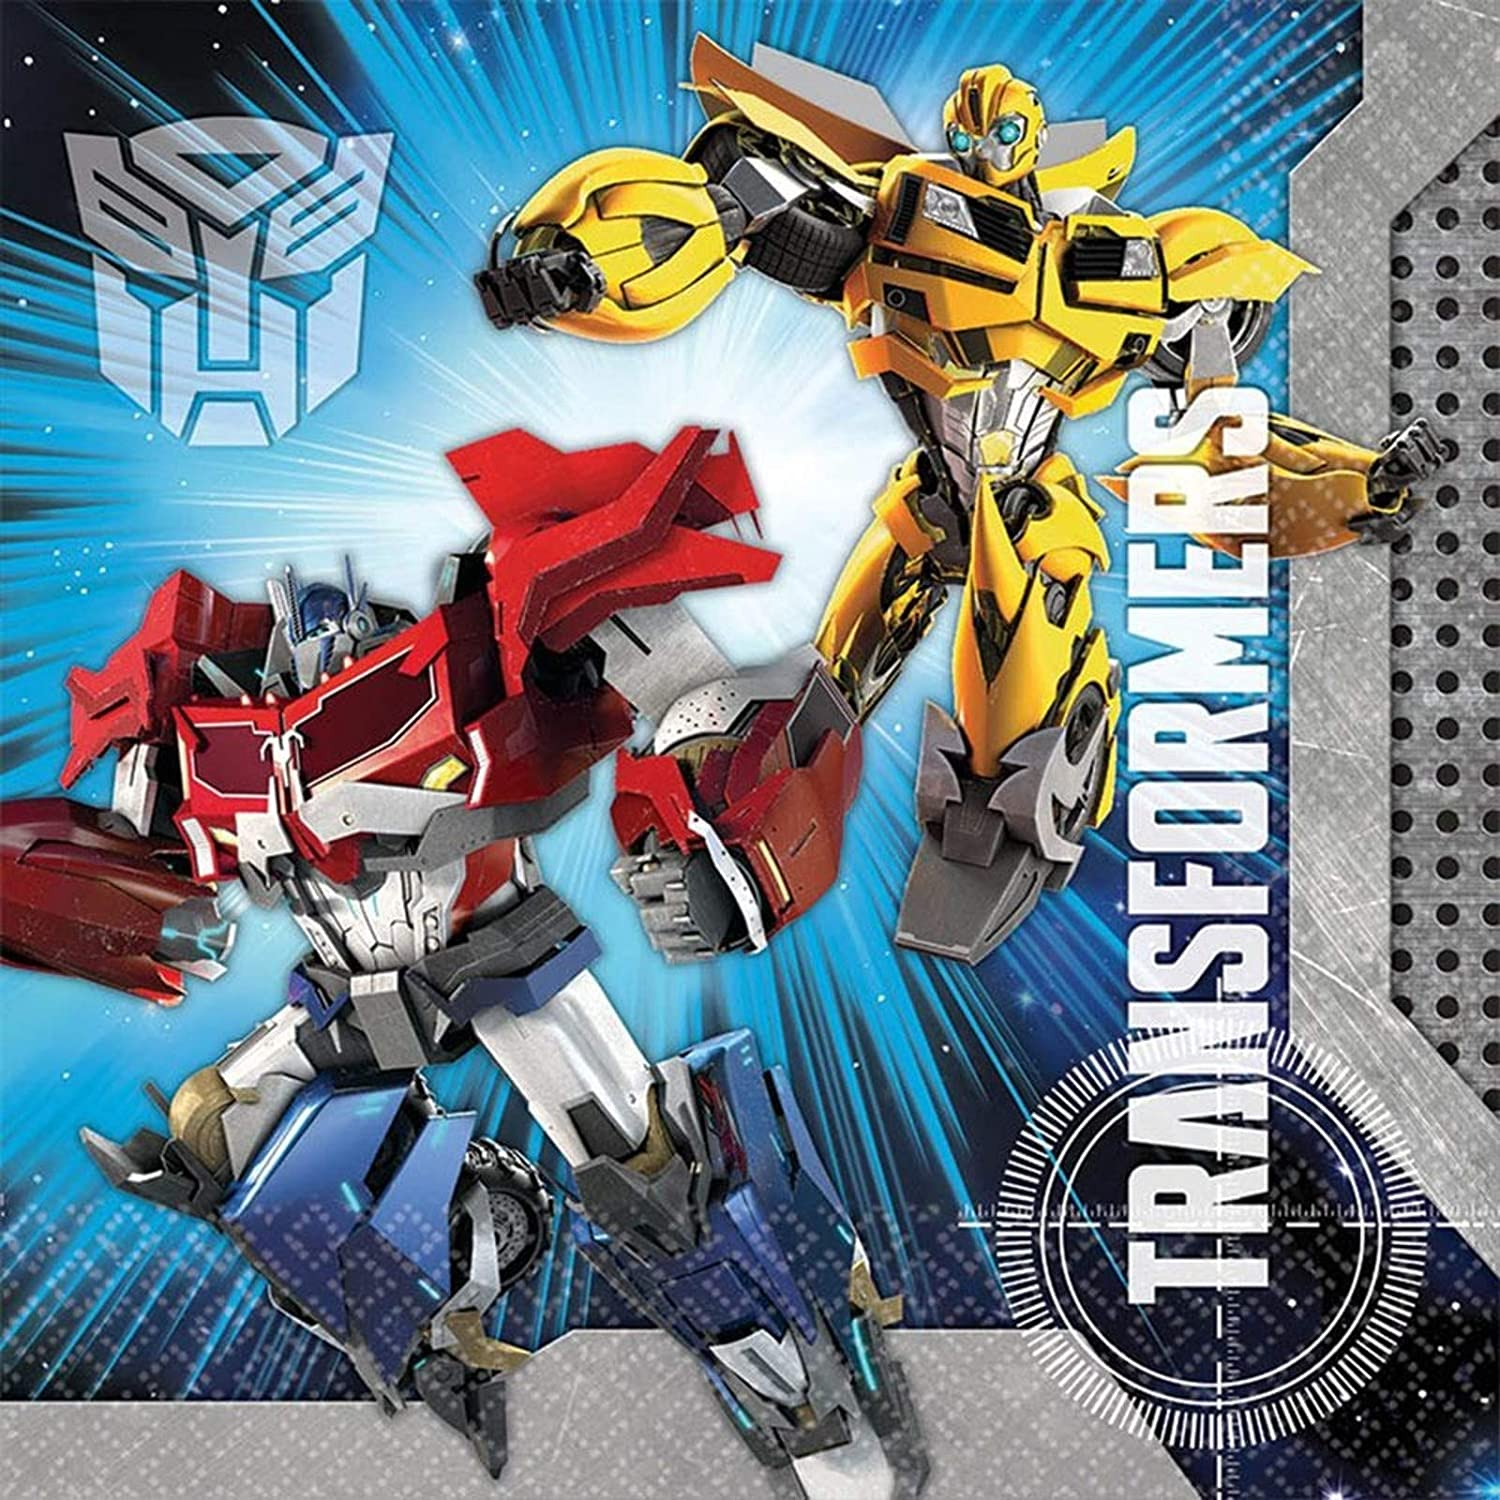 "B00LI0Y6W4 Mighty Transformers Birthday Party Luncheon Napkins , Pack Of 16, Blue , 6 1/2"" 81TjsTV0GZL"